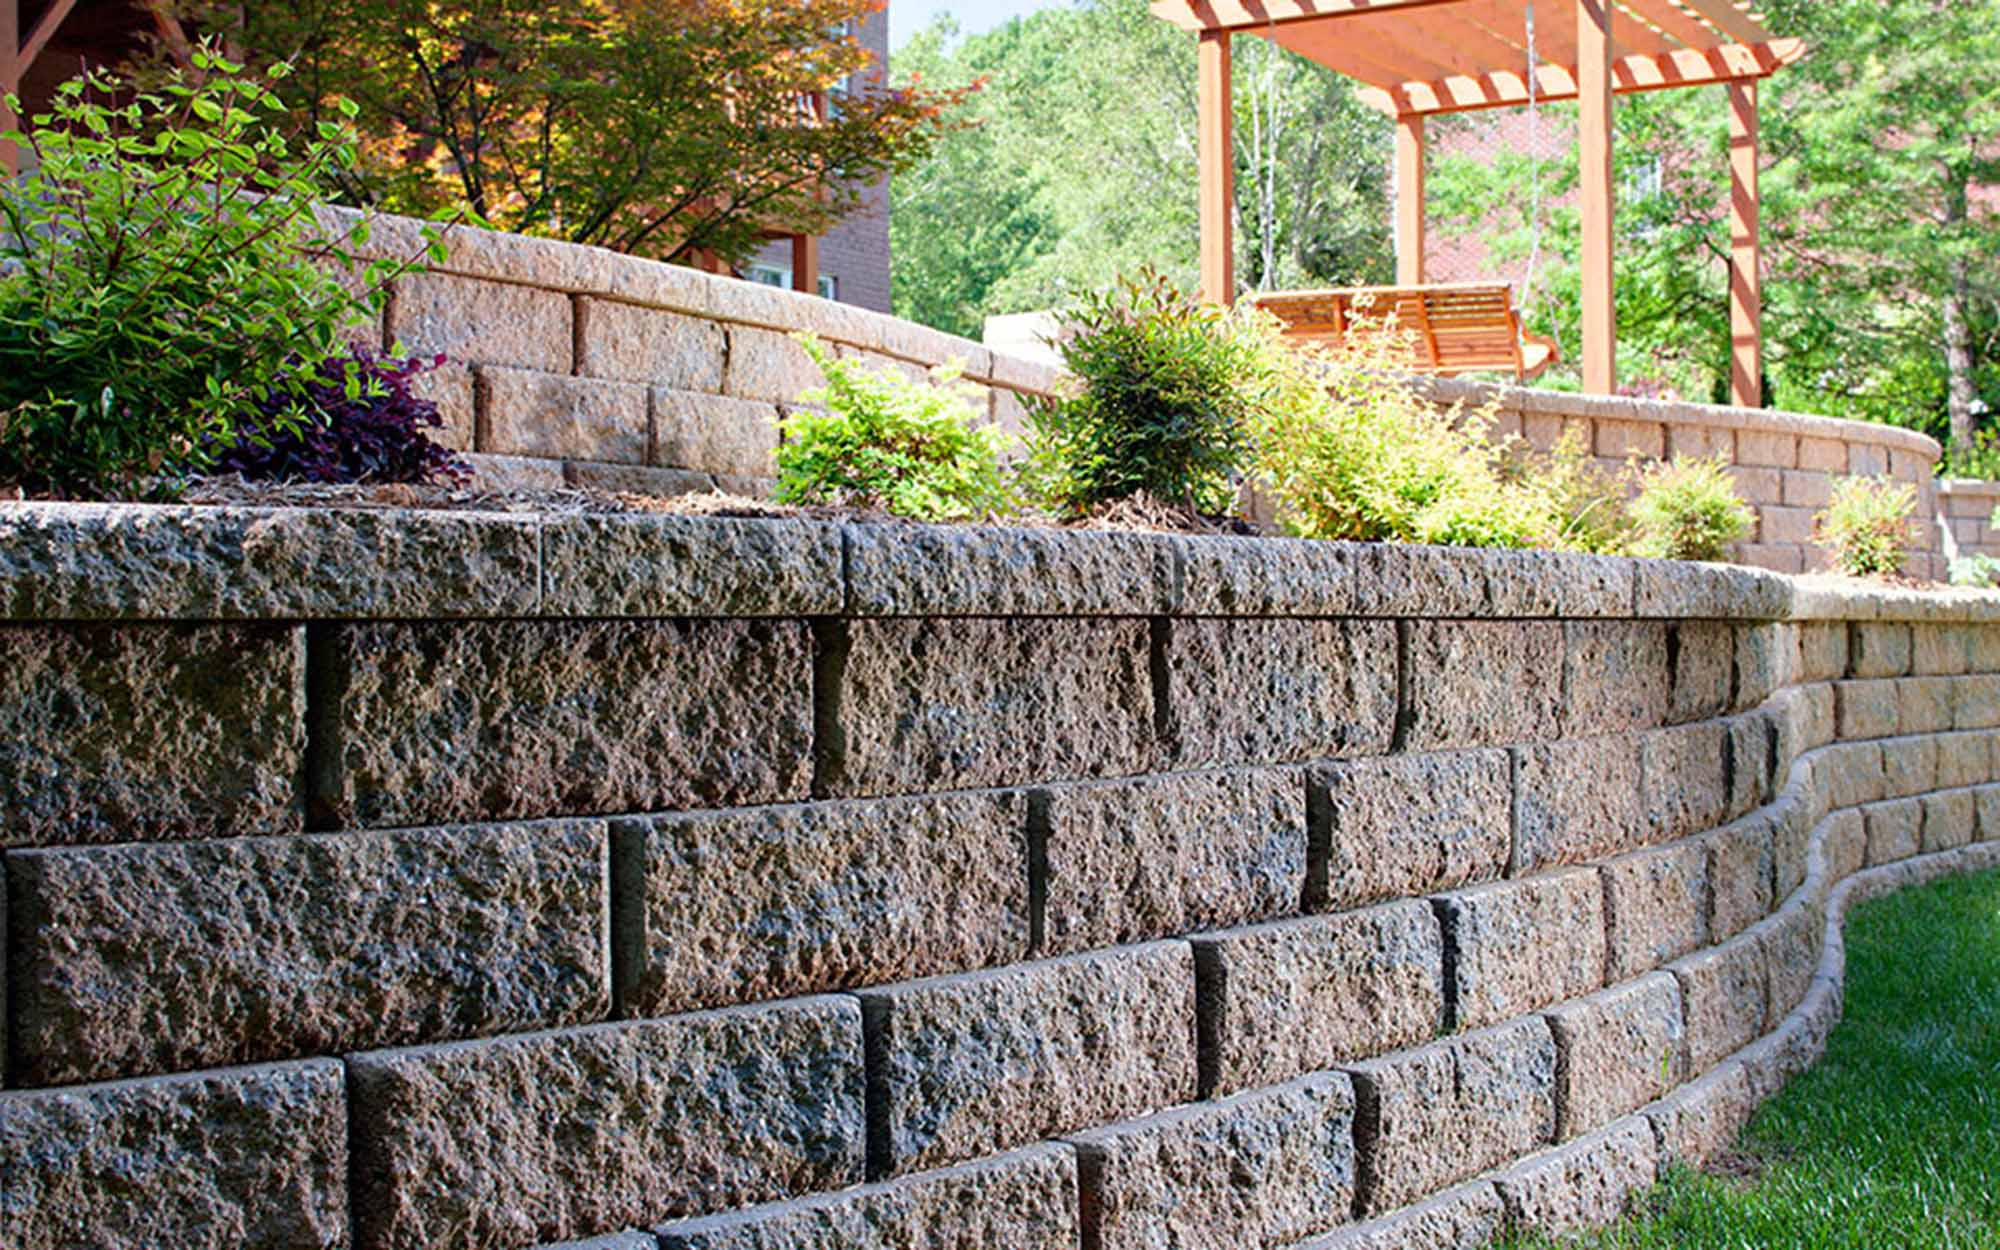 Belgard Retaining Walls - Belgard has a strong, durable and easy to install retaining wall line to compliment your landscape.